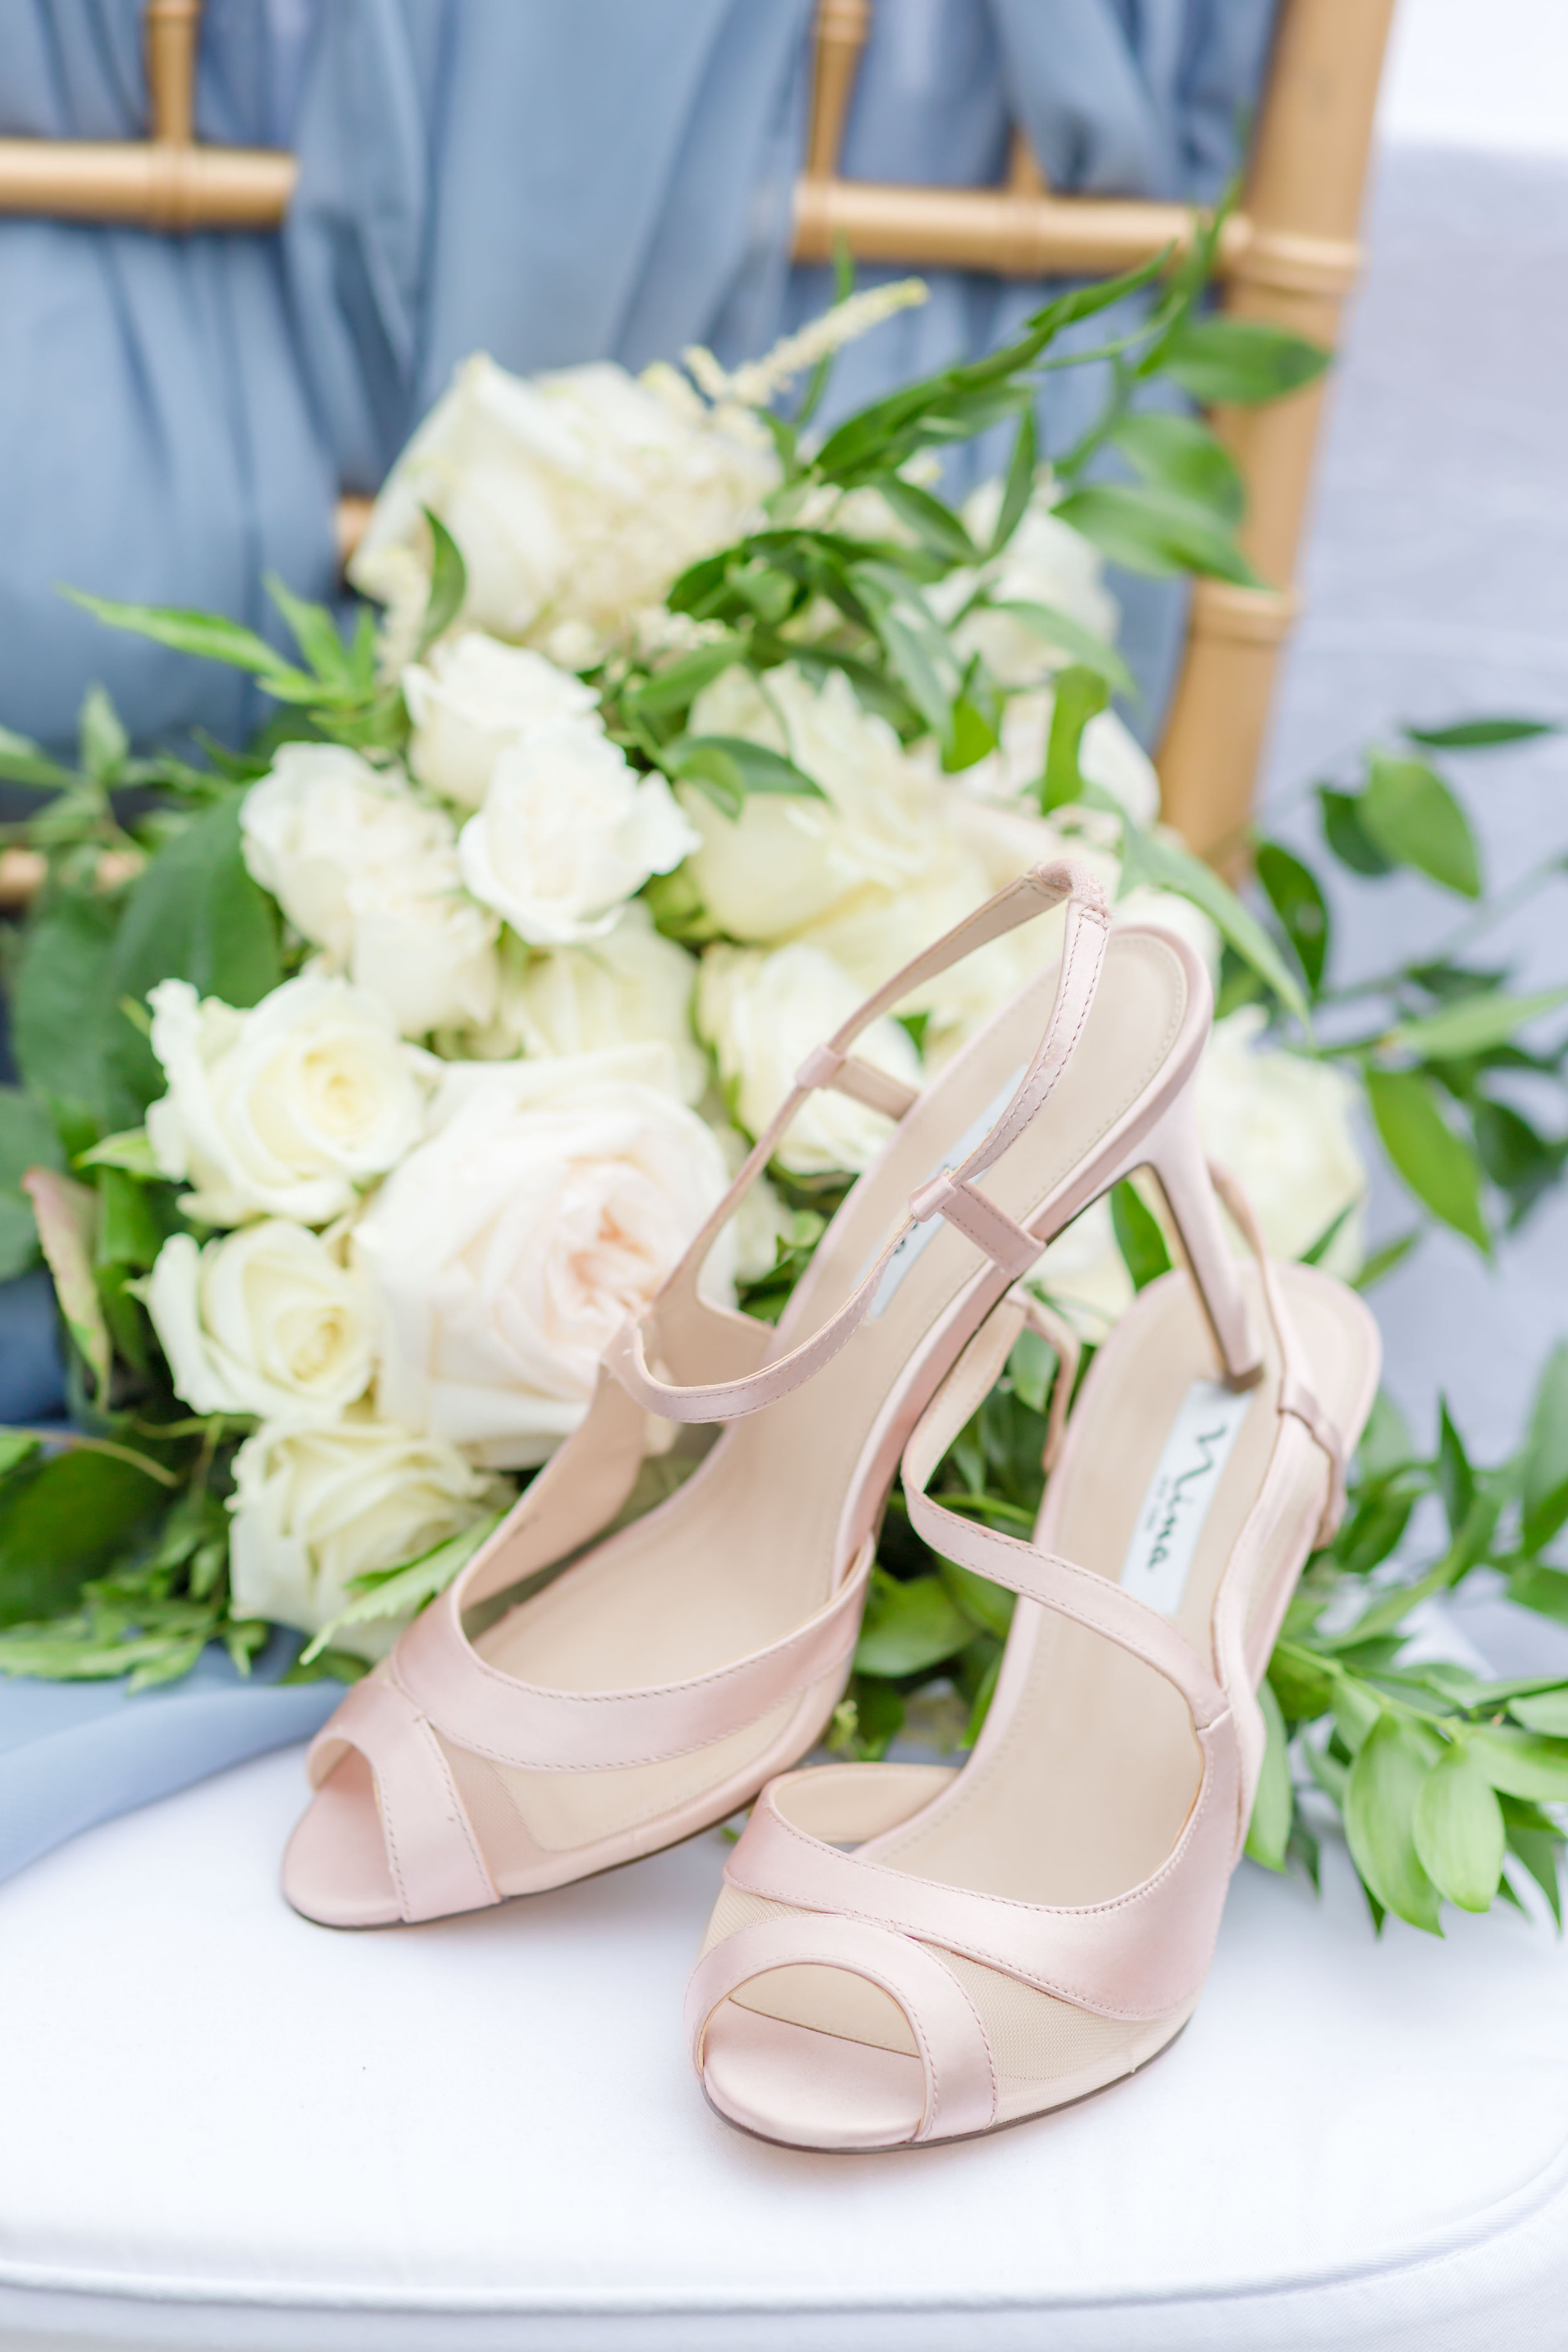 ScarlettExpressions-StyledShoot-Shoes_Bouquet-21.jpg